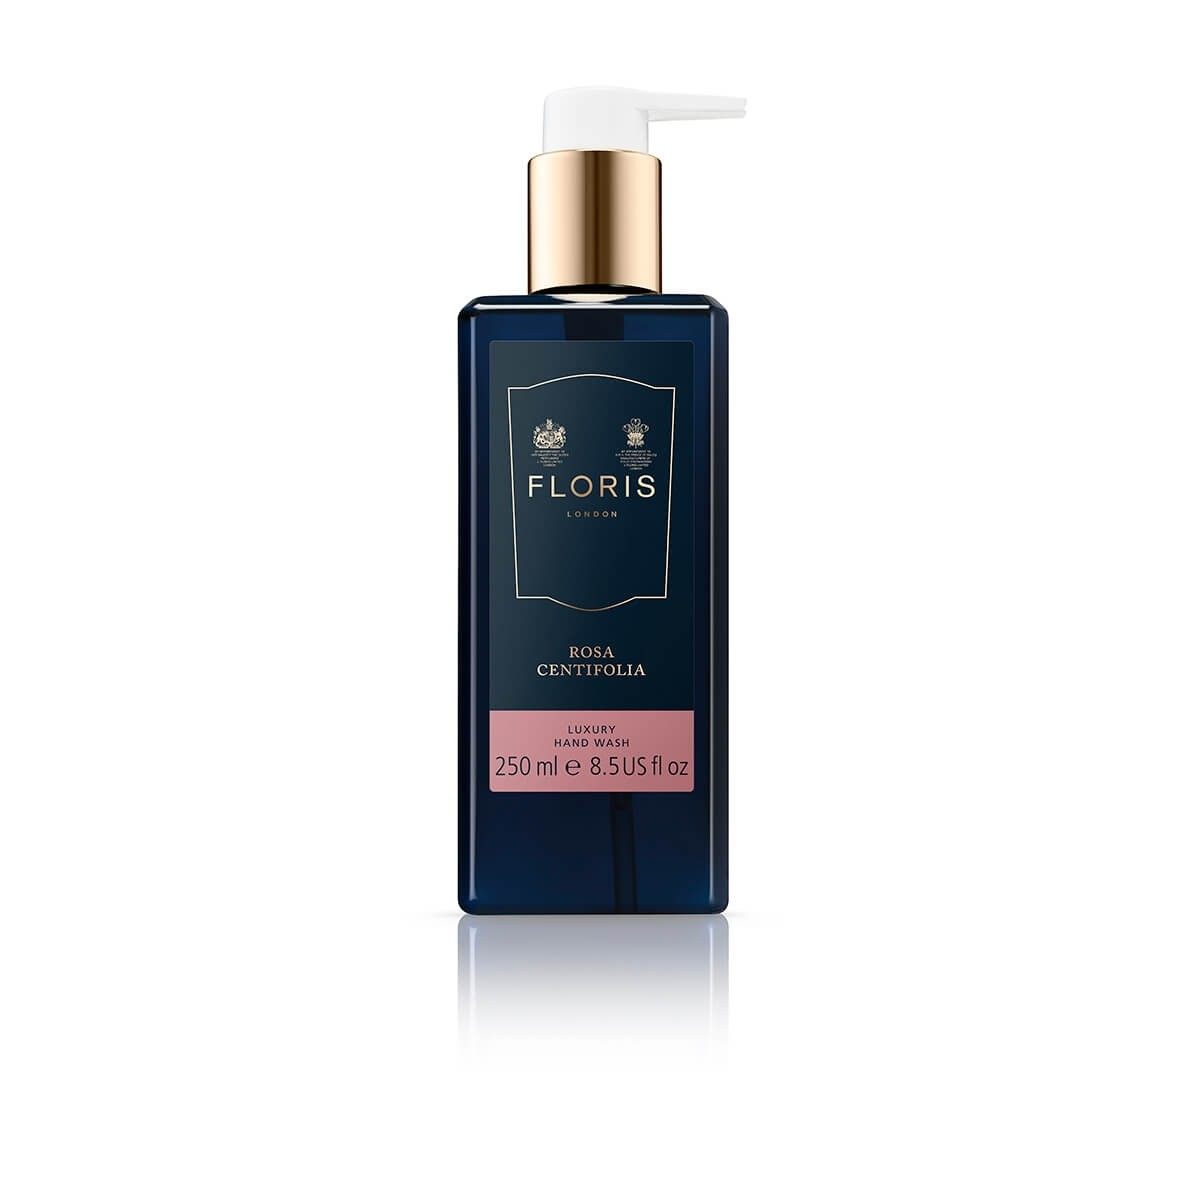 Floris Rosa Centifolia Luxury Hand Wash